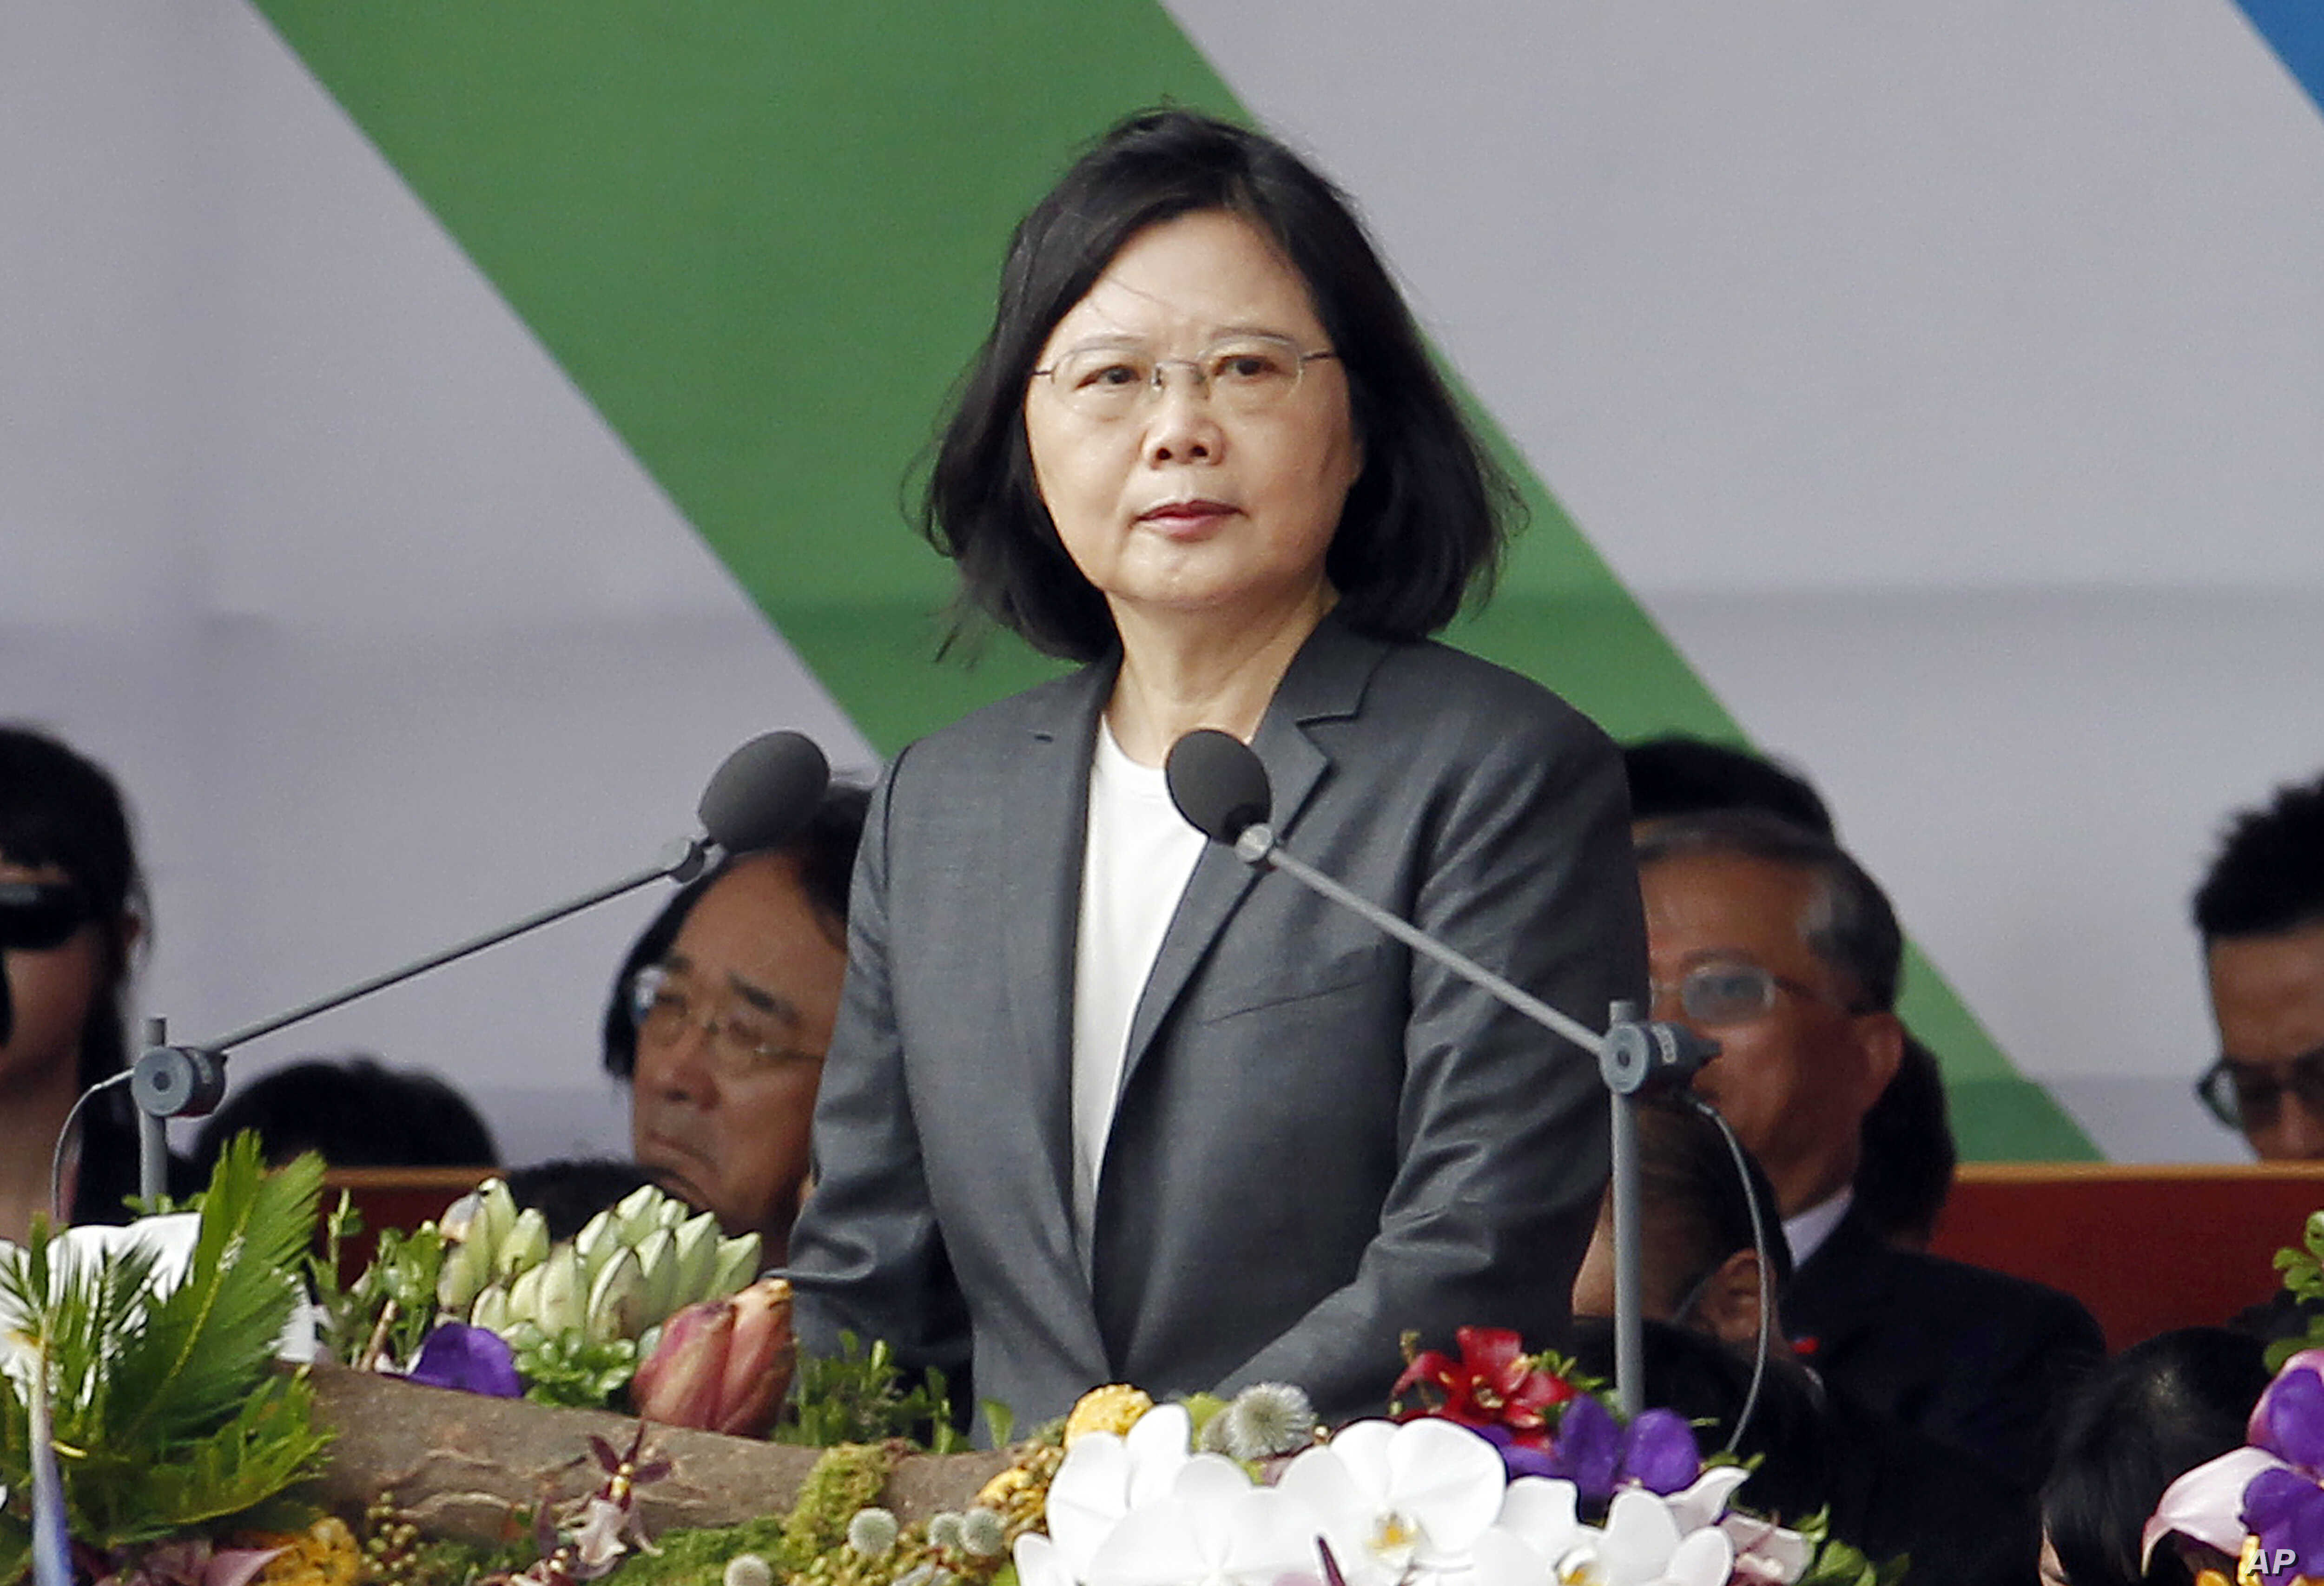 Taiwan's President Tsai Ing-wen delivers a speech during the National Day celebrations in front of the Presidential Building in Taipei, Taiwan, Tuesday, Oct. 10, 2017.